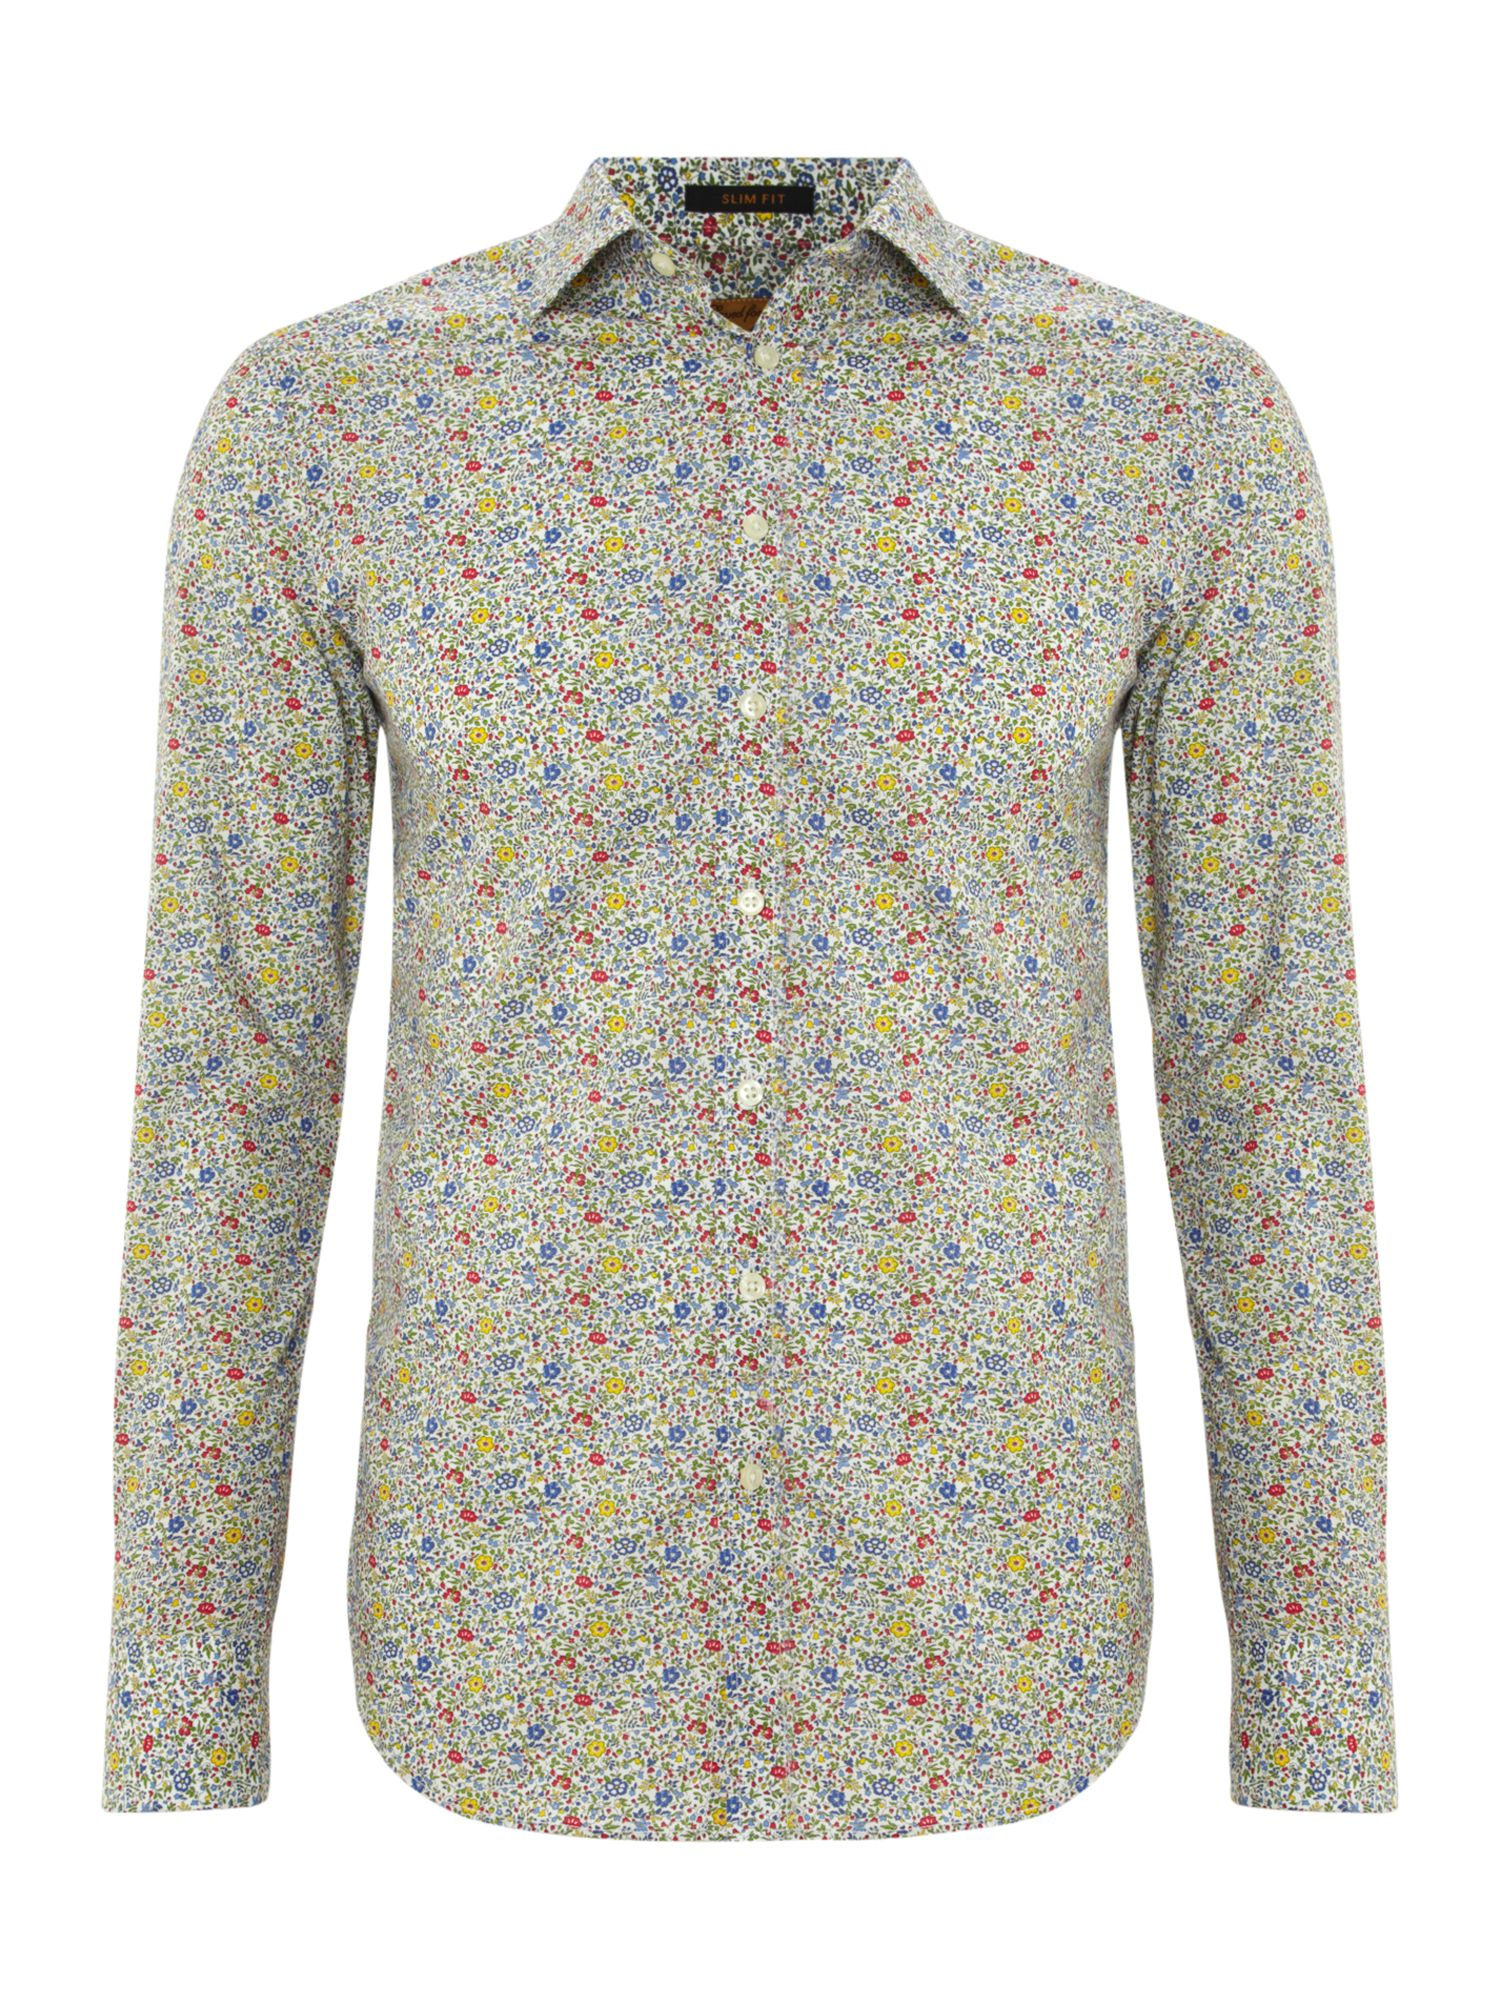 Small flower print 3 button cuff shirt